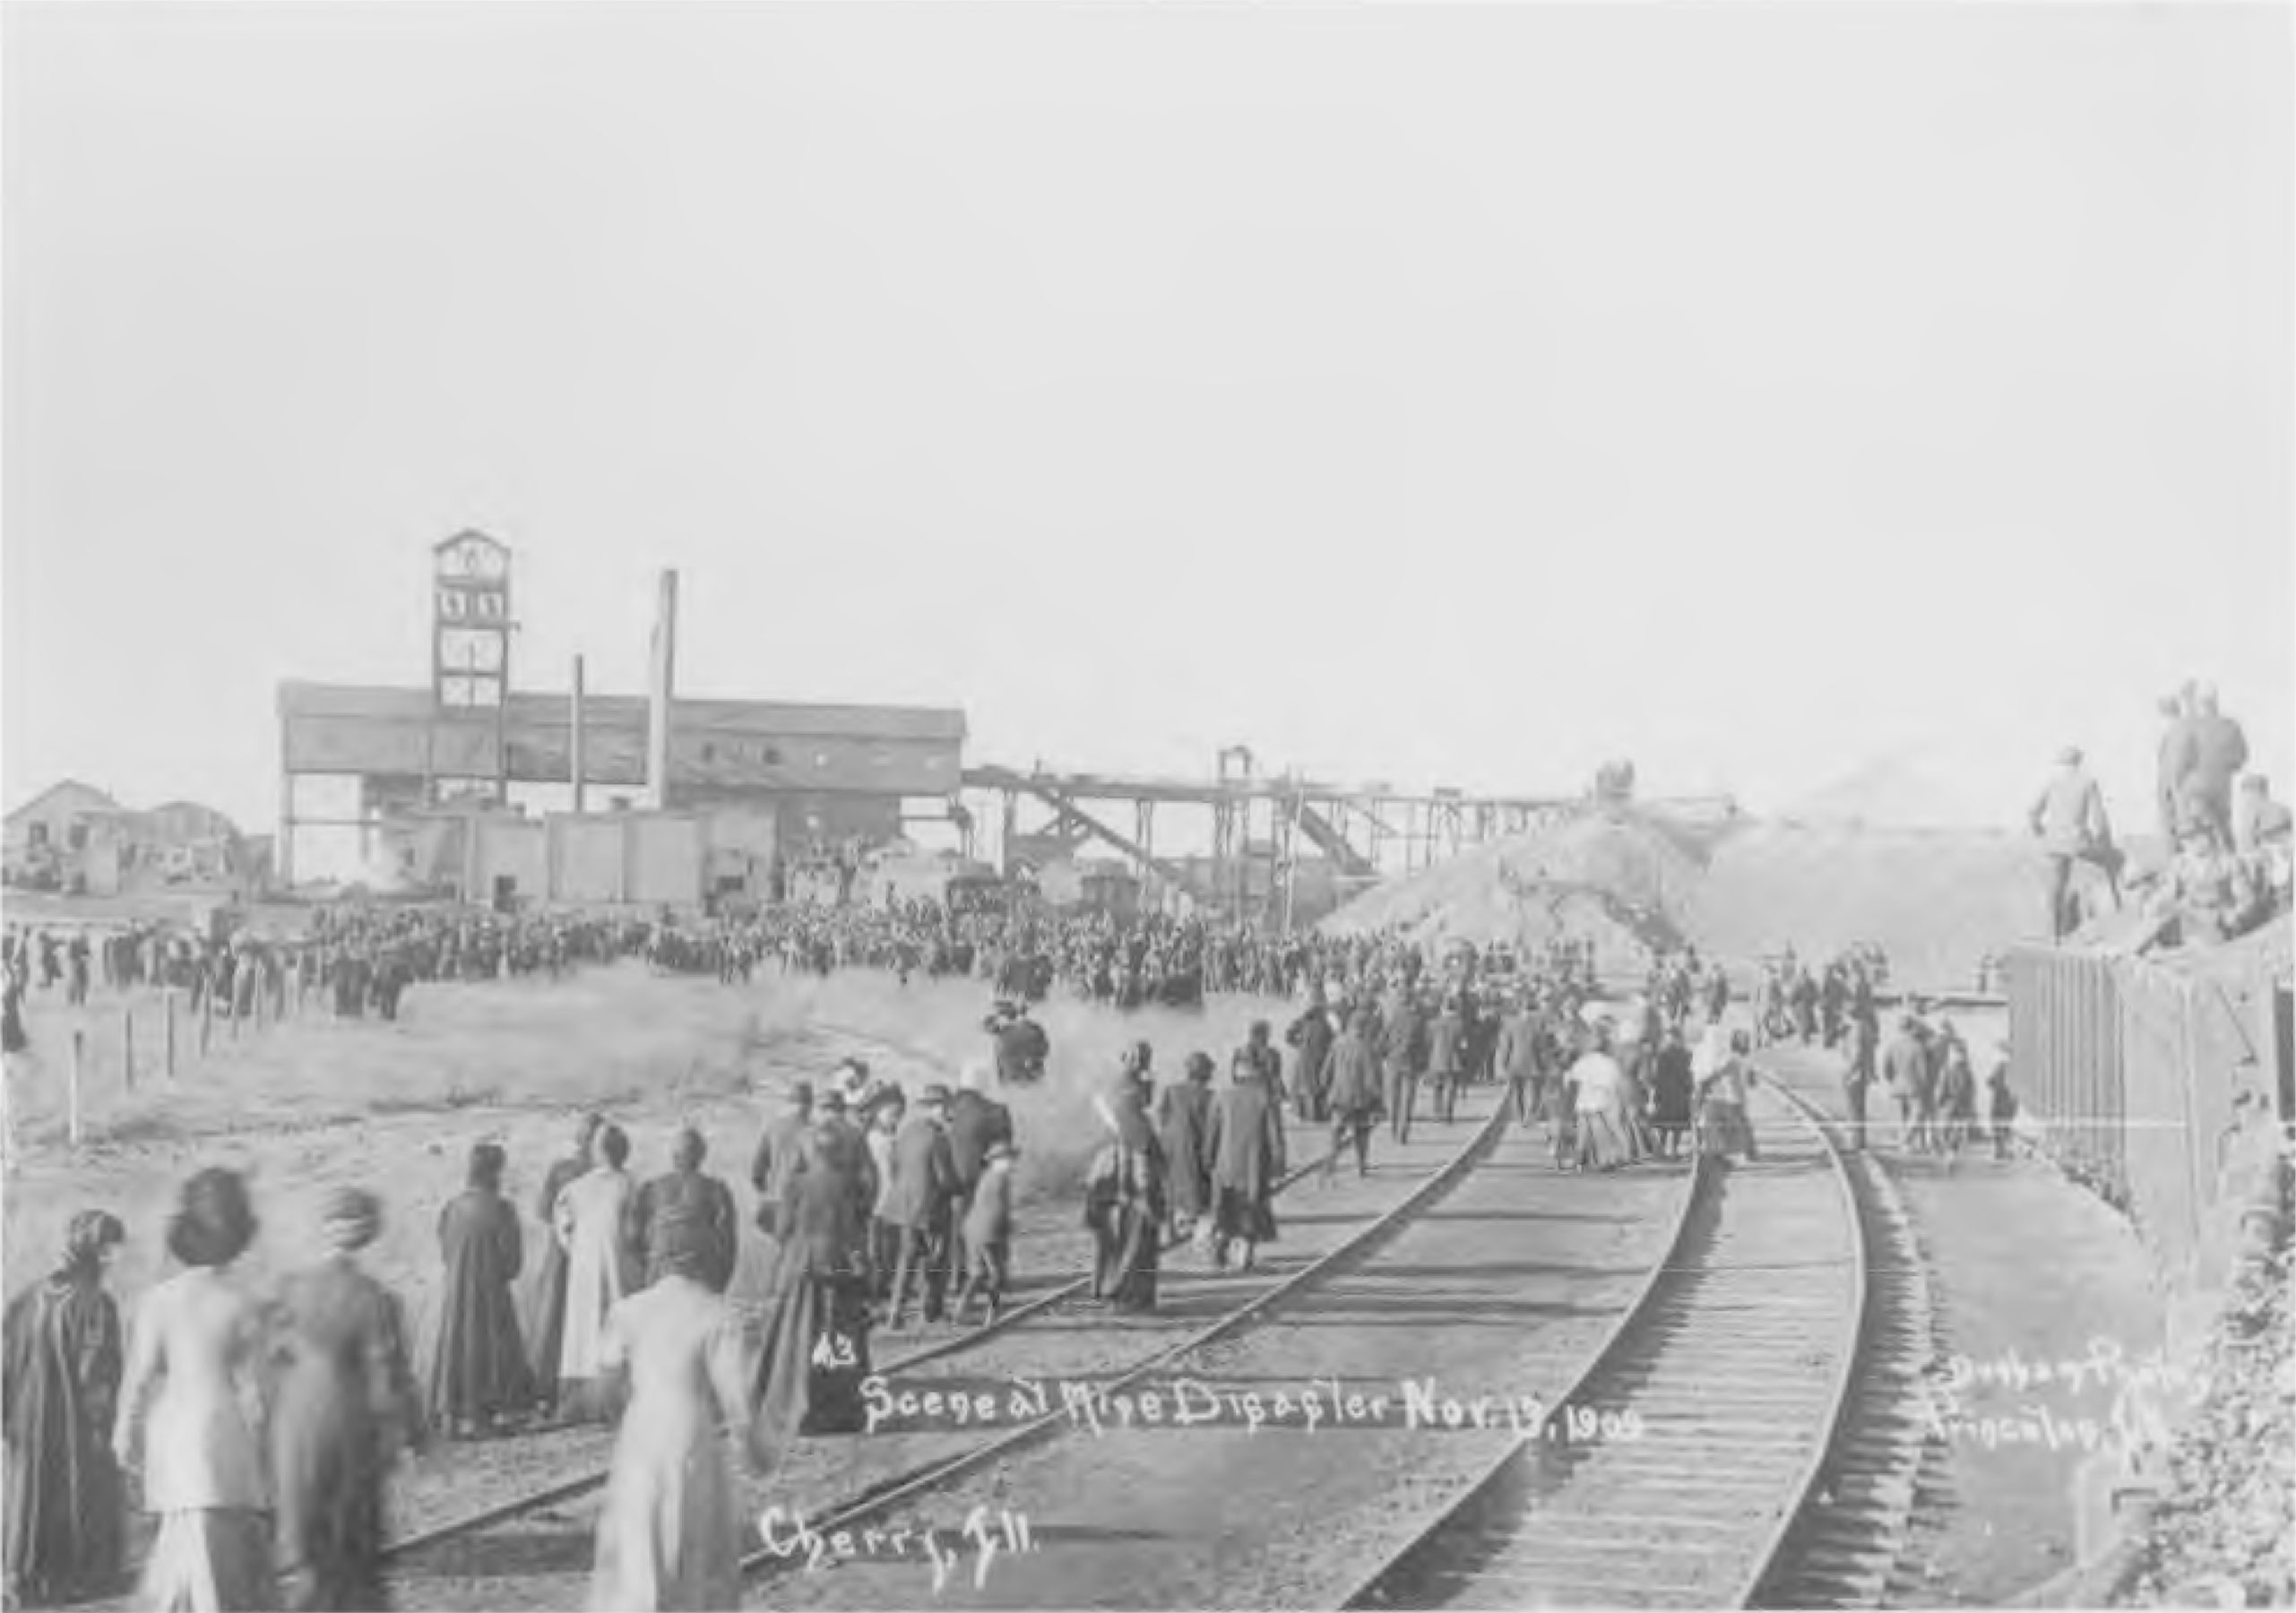 Photograph of scene at Cherry Mine Disaster, in which a crowd walks along railroad tracks toward the mine, 1909.